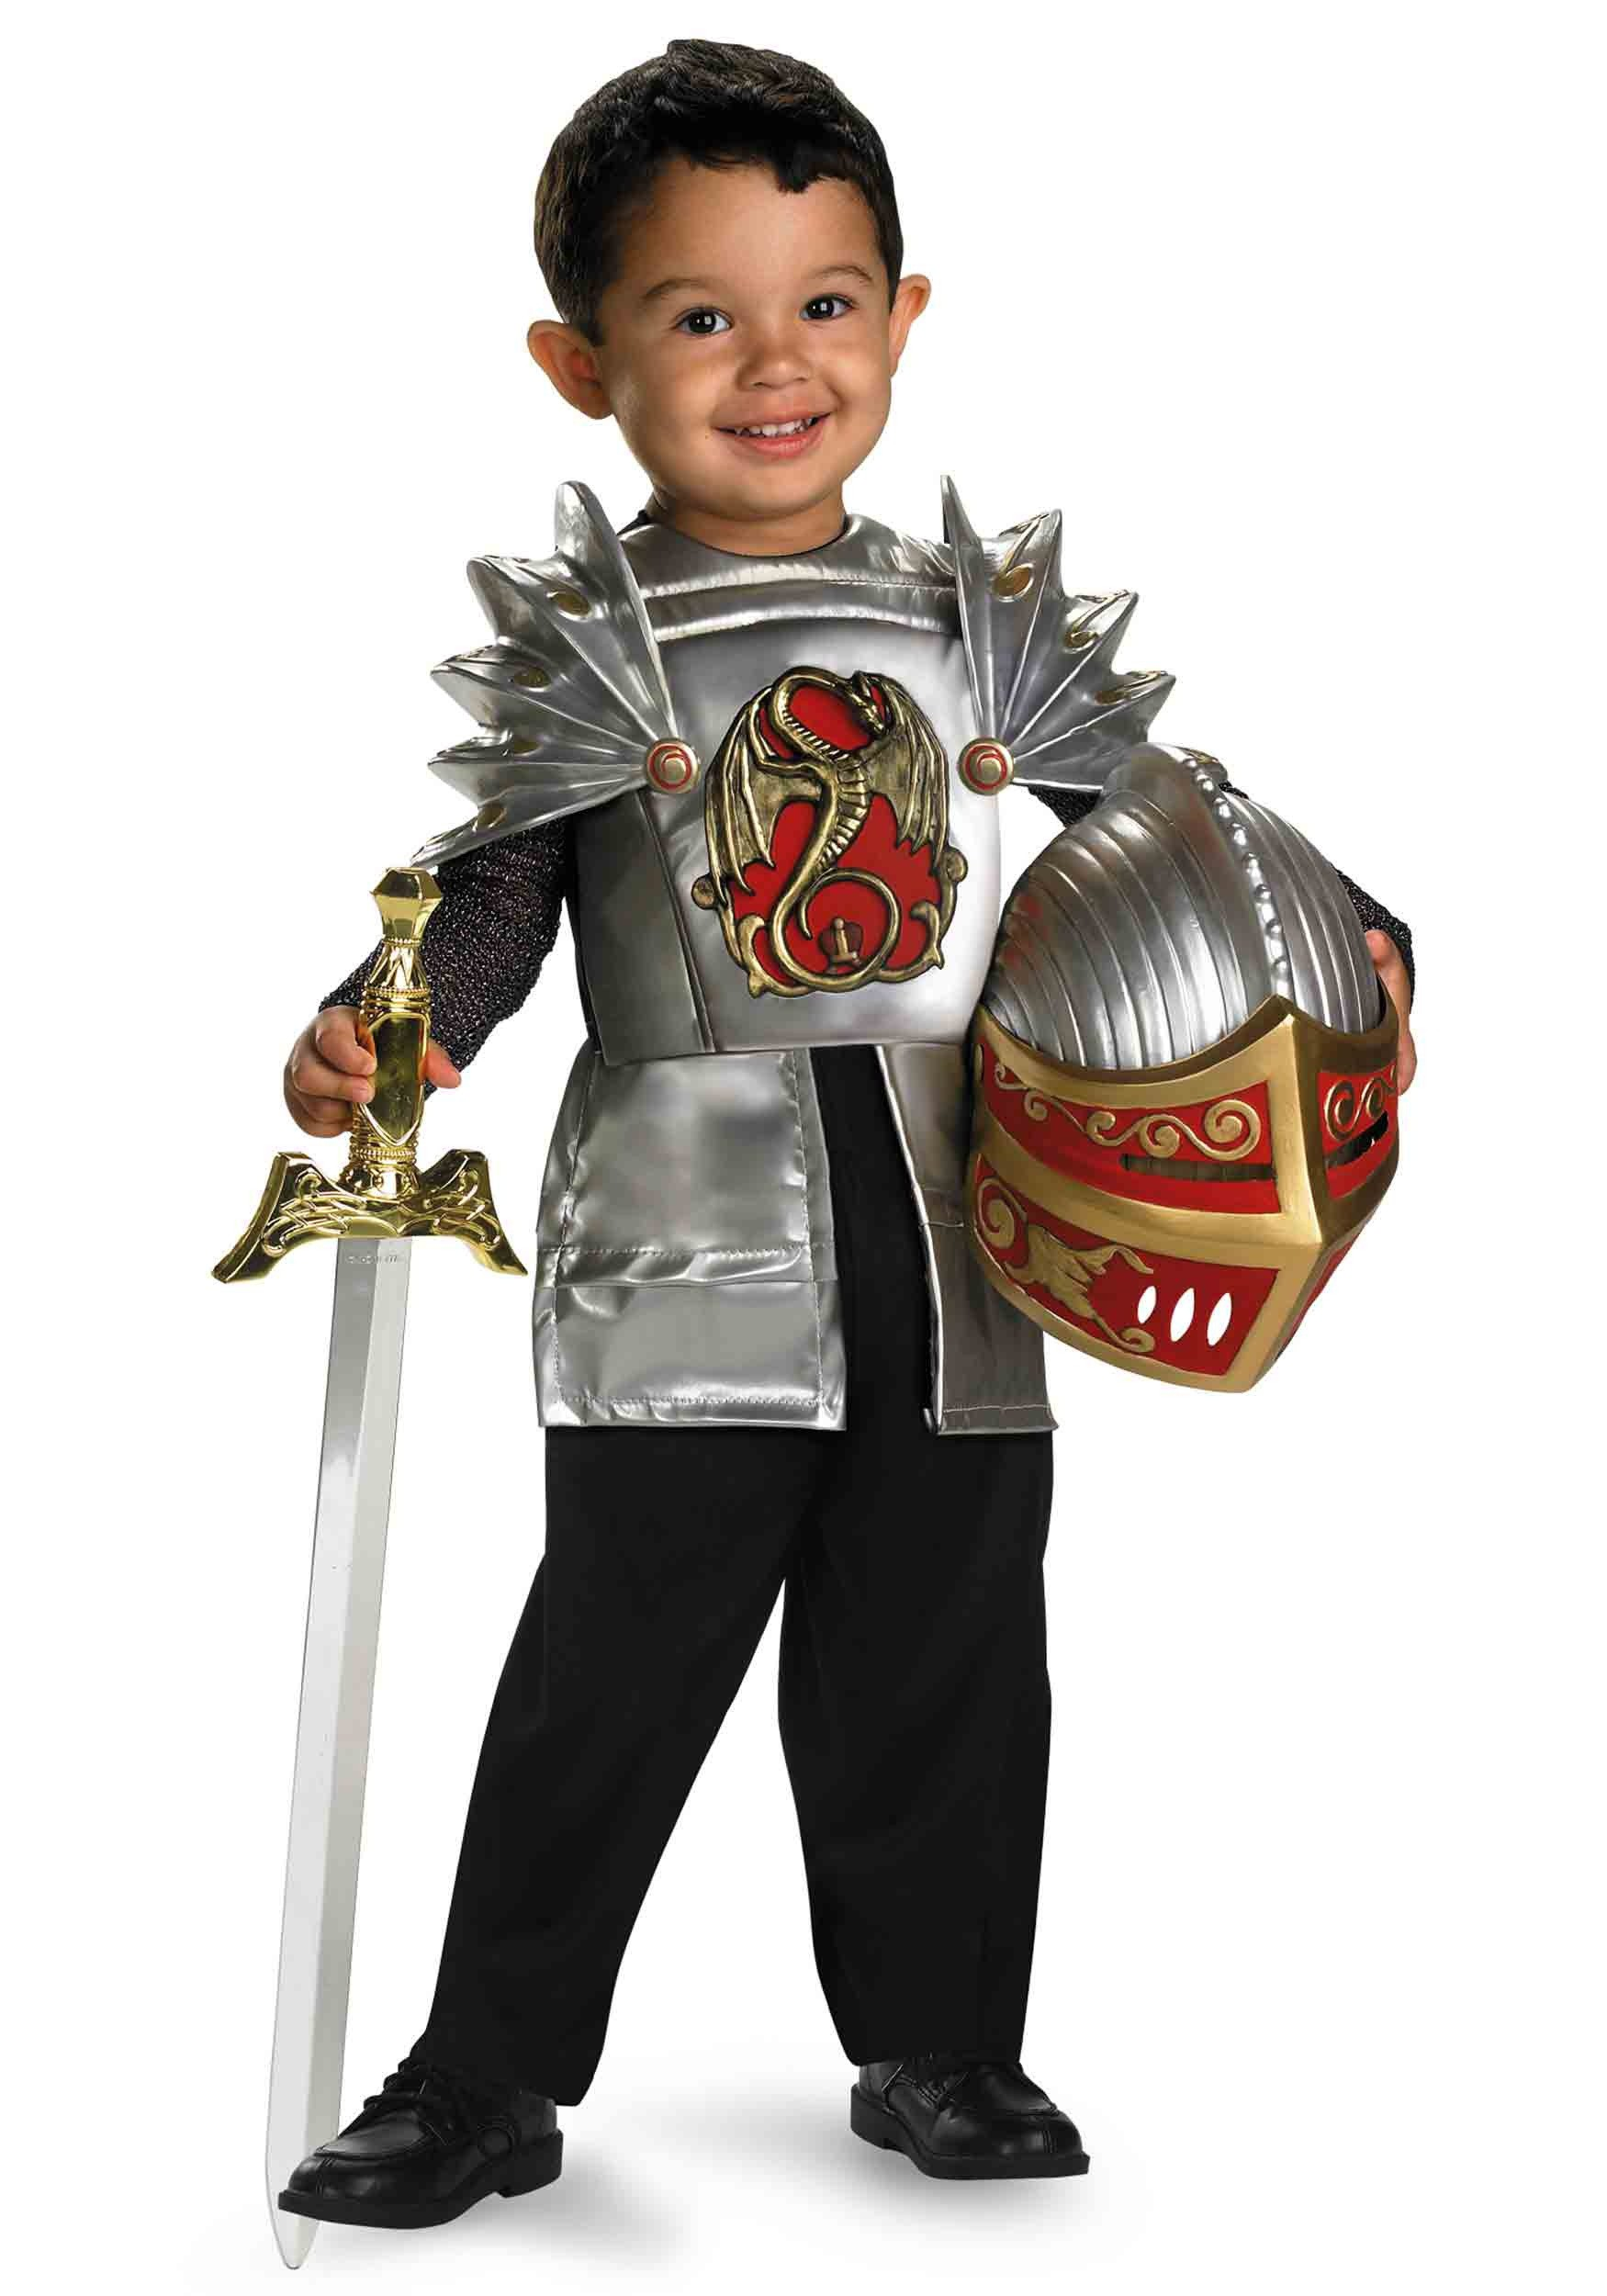 Halloween Decorations For The Home Toddler Knight Of The Dragon Costume